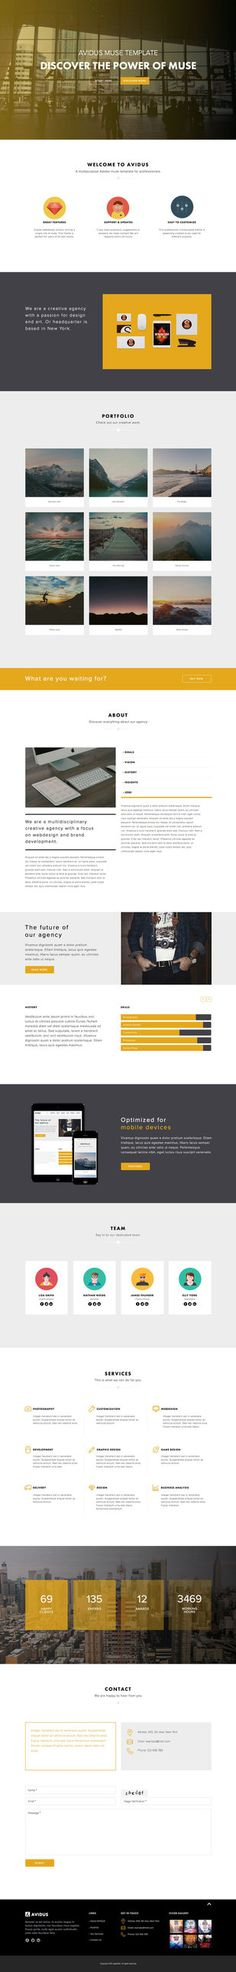 Adobe Muse Template Simple Focus Template Design Ideas